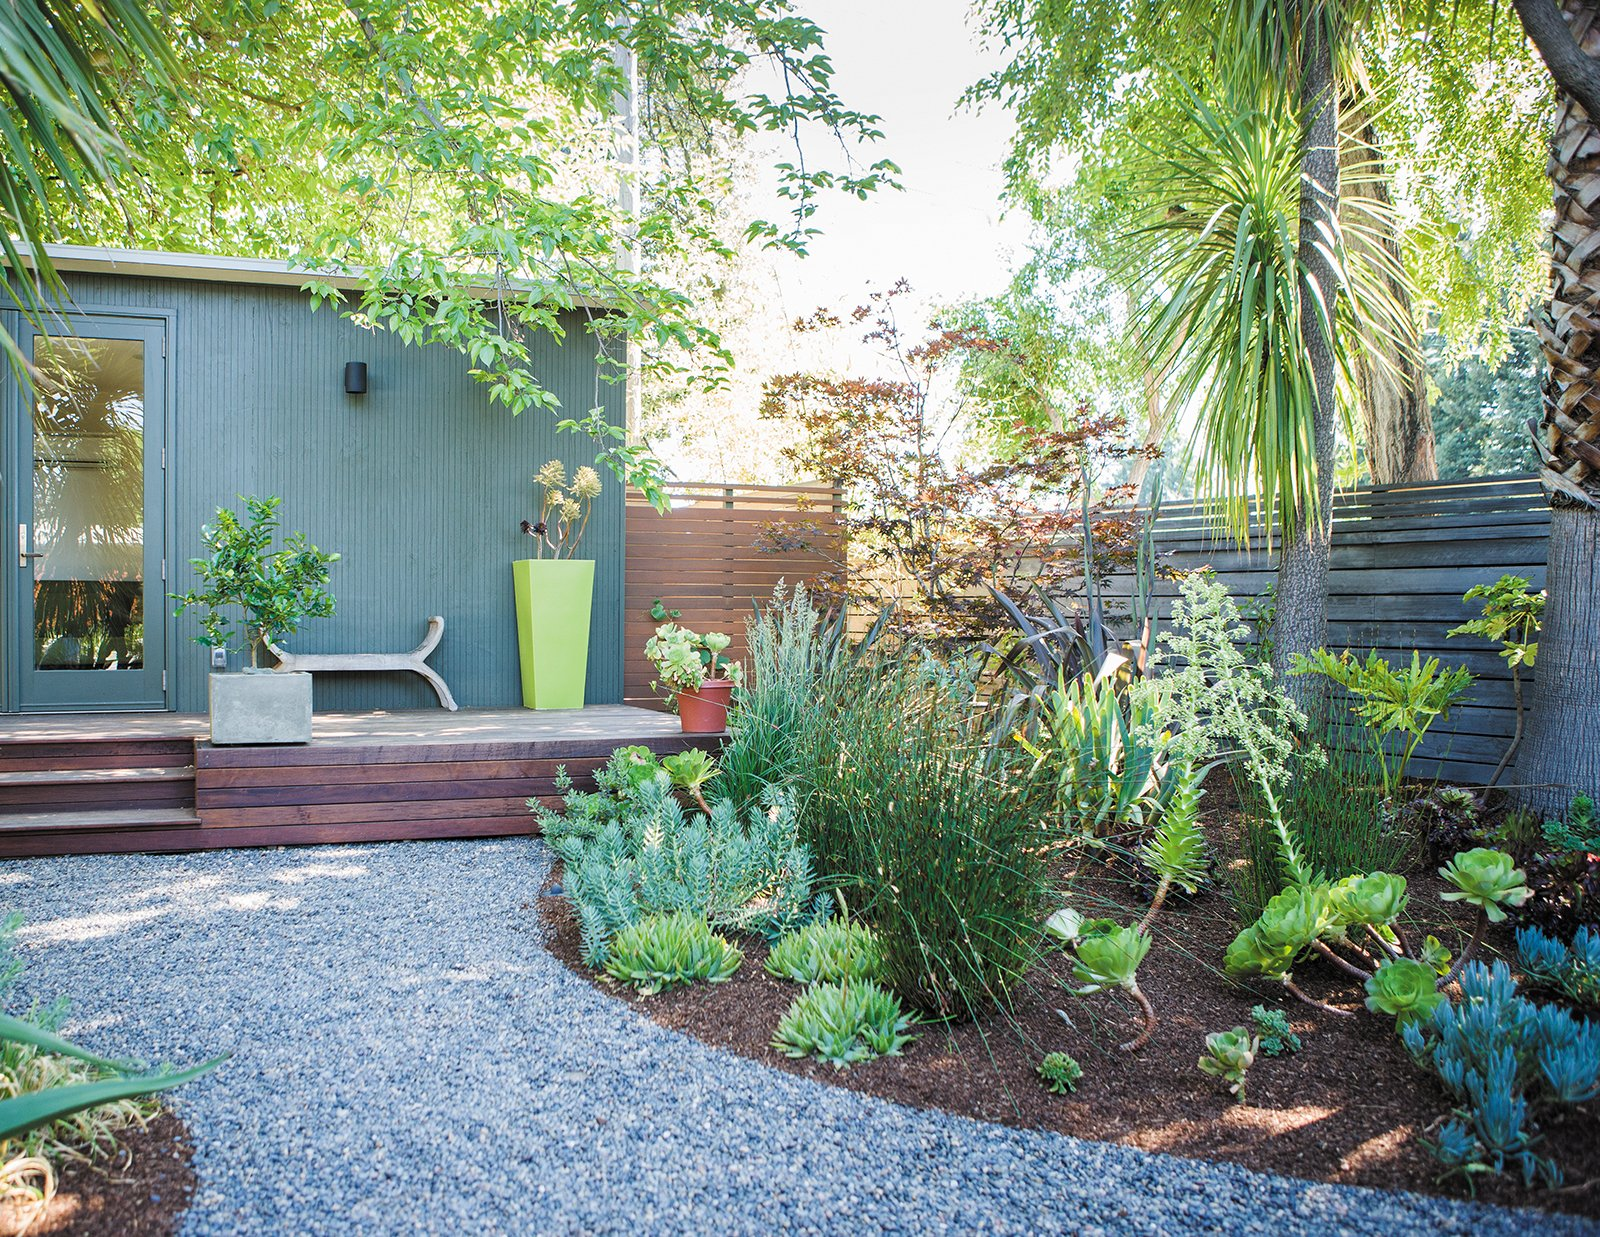 How to Make Your Tiny Yard Feel Spacious - Photo 1 of 7